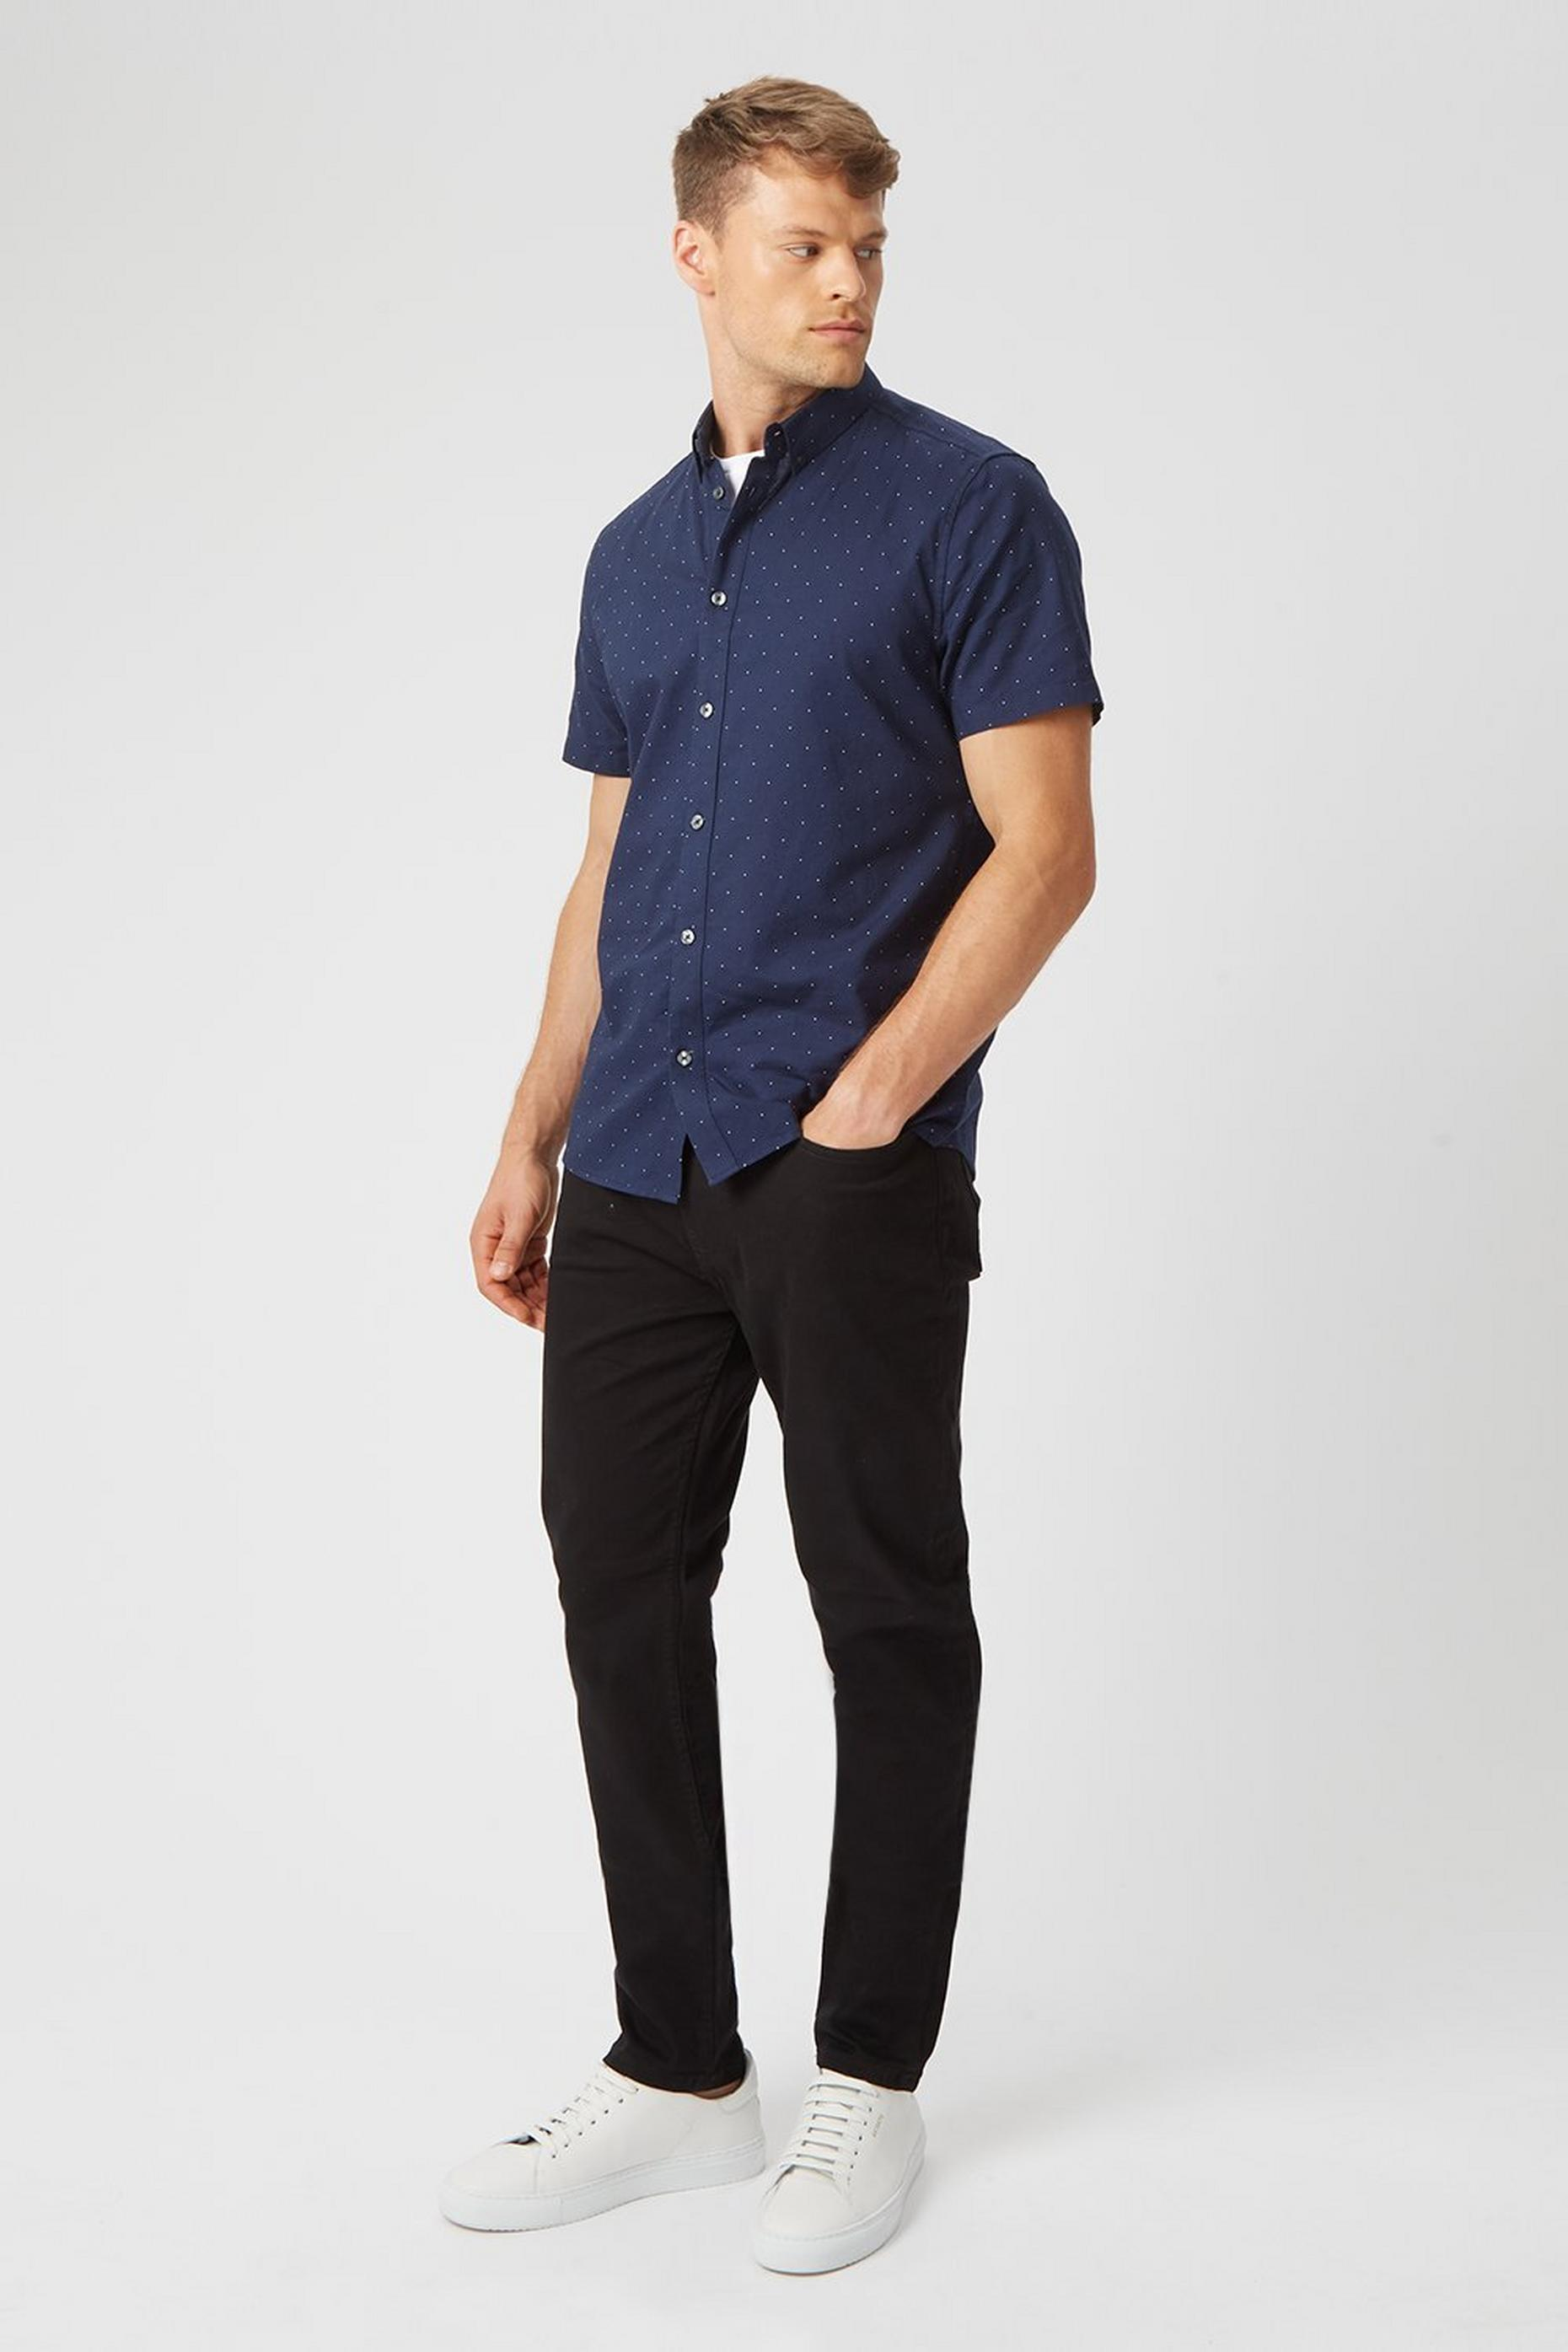 Black Tapered Fit Jeans with Organic Cotton